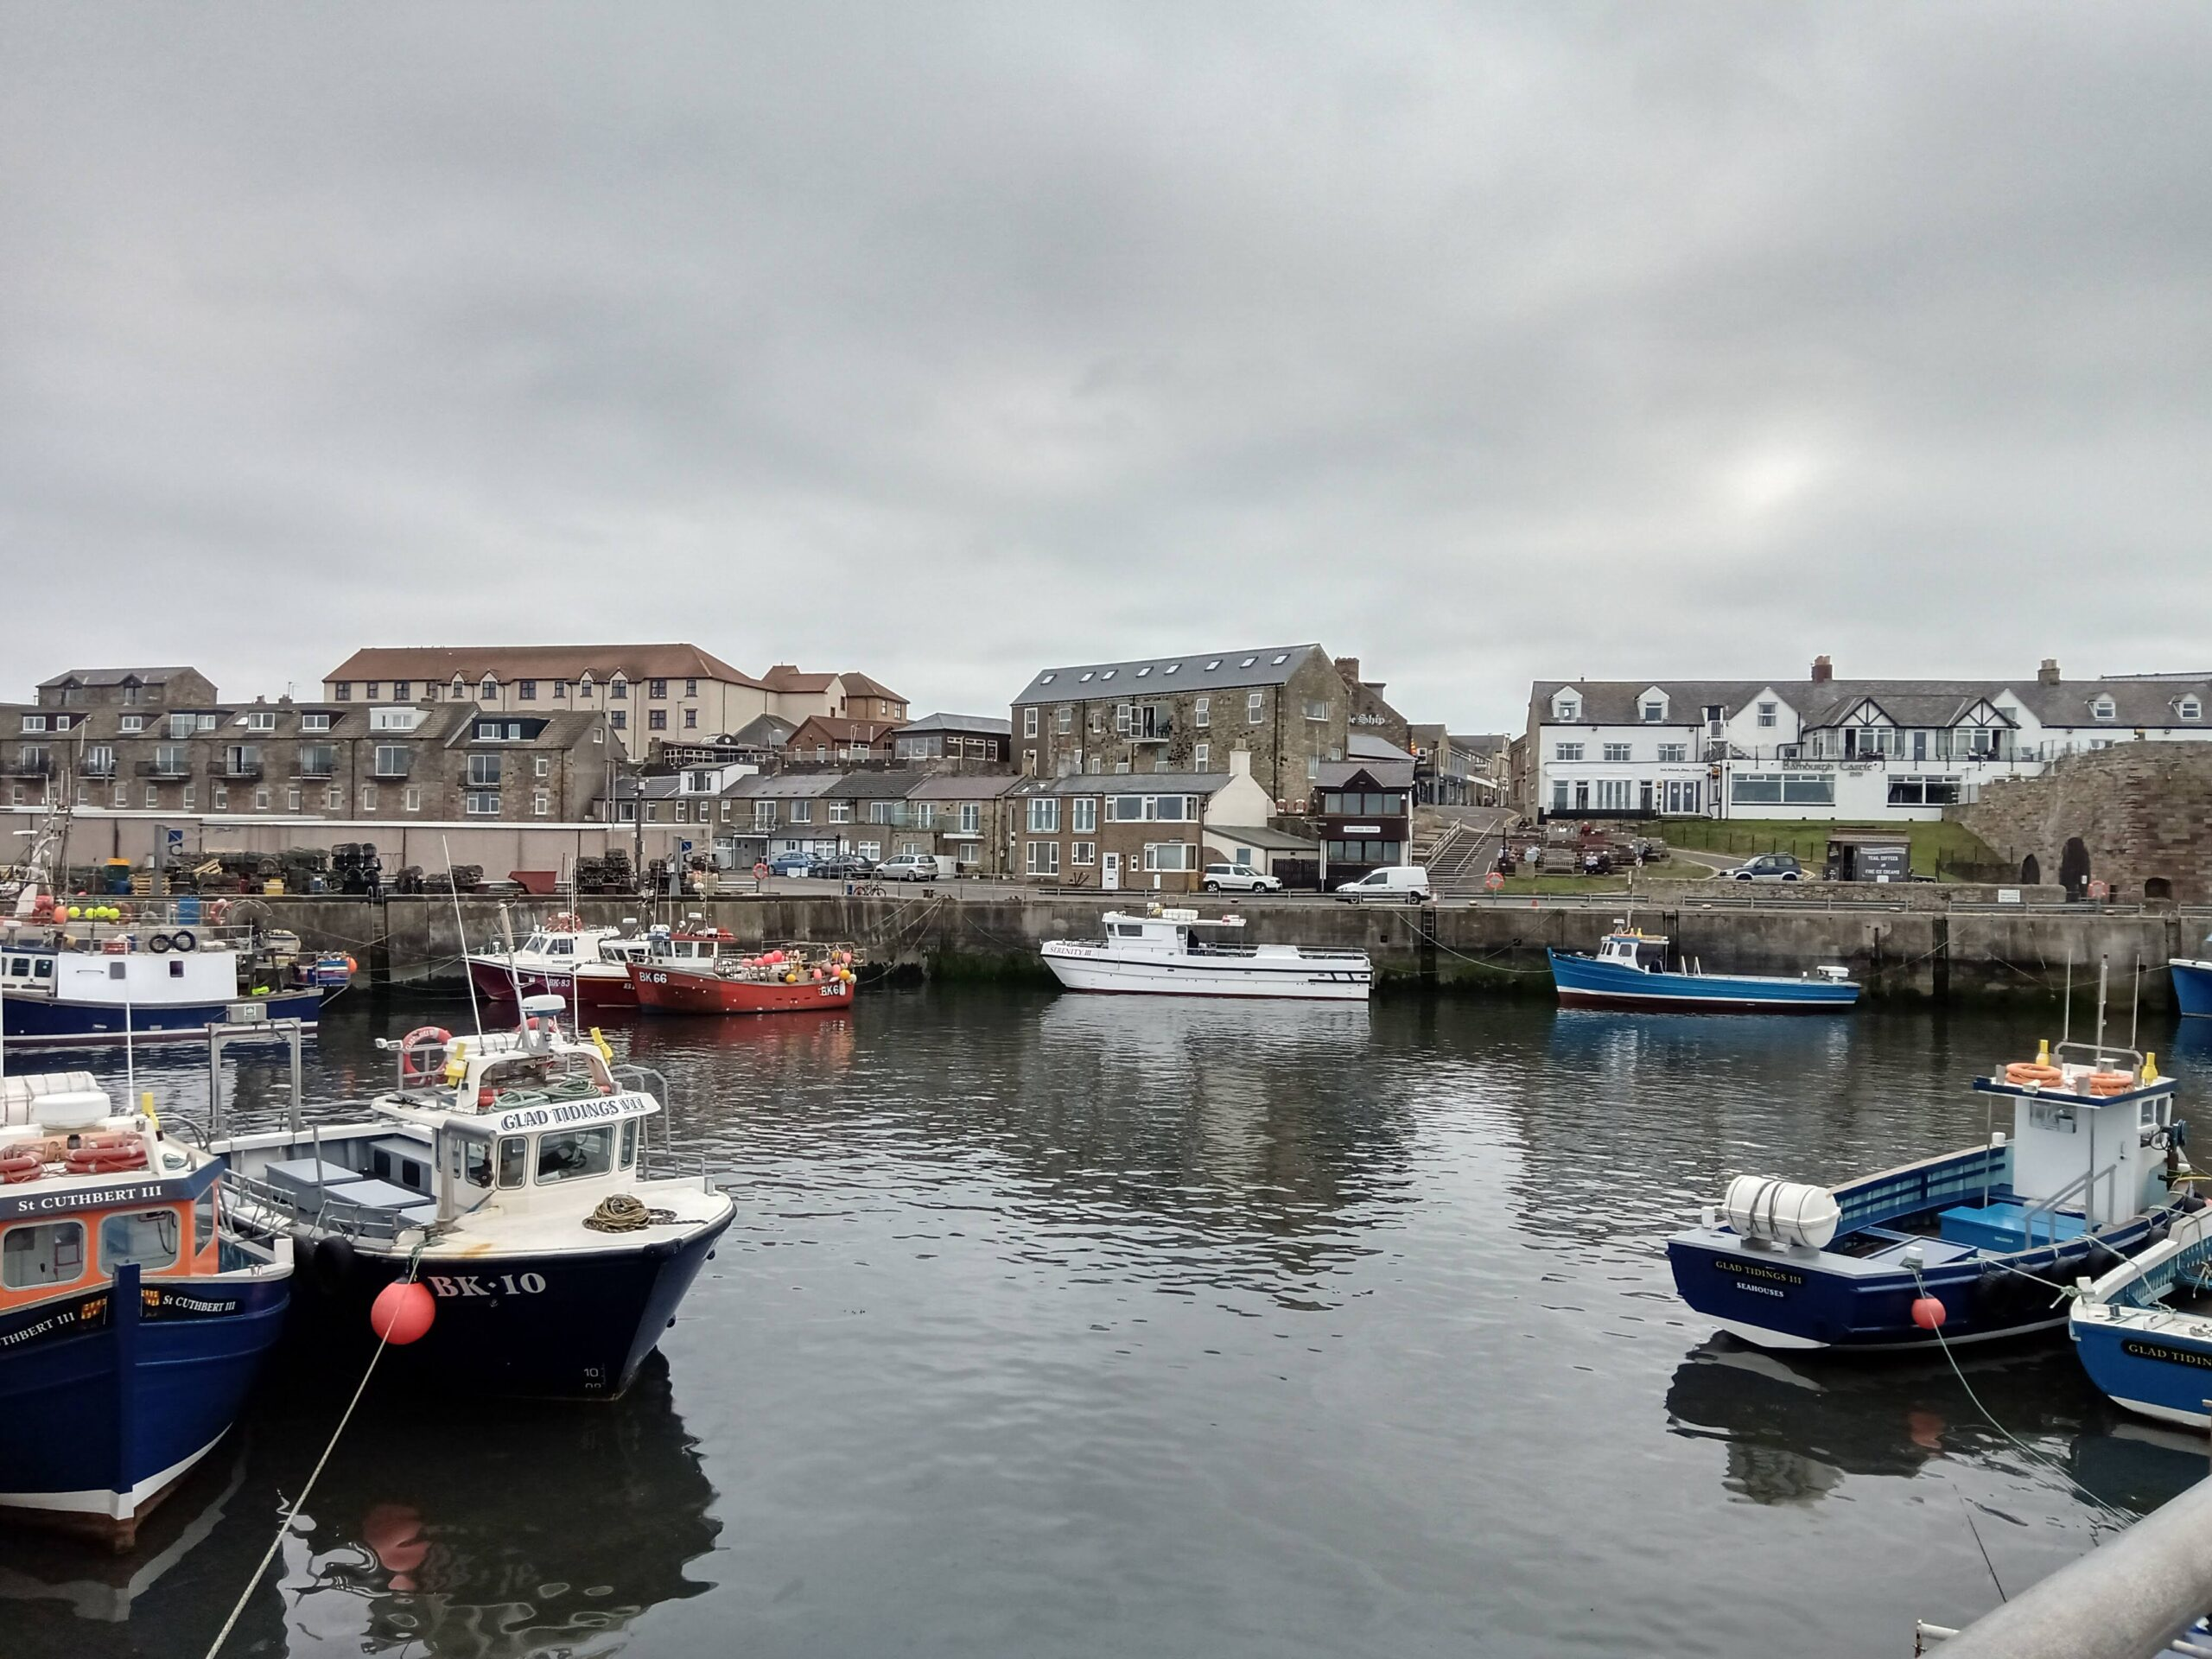 Yorkshire to Seahouses